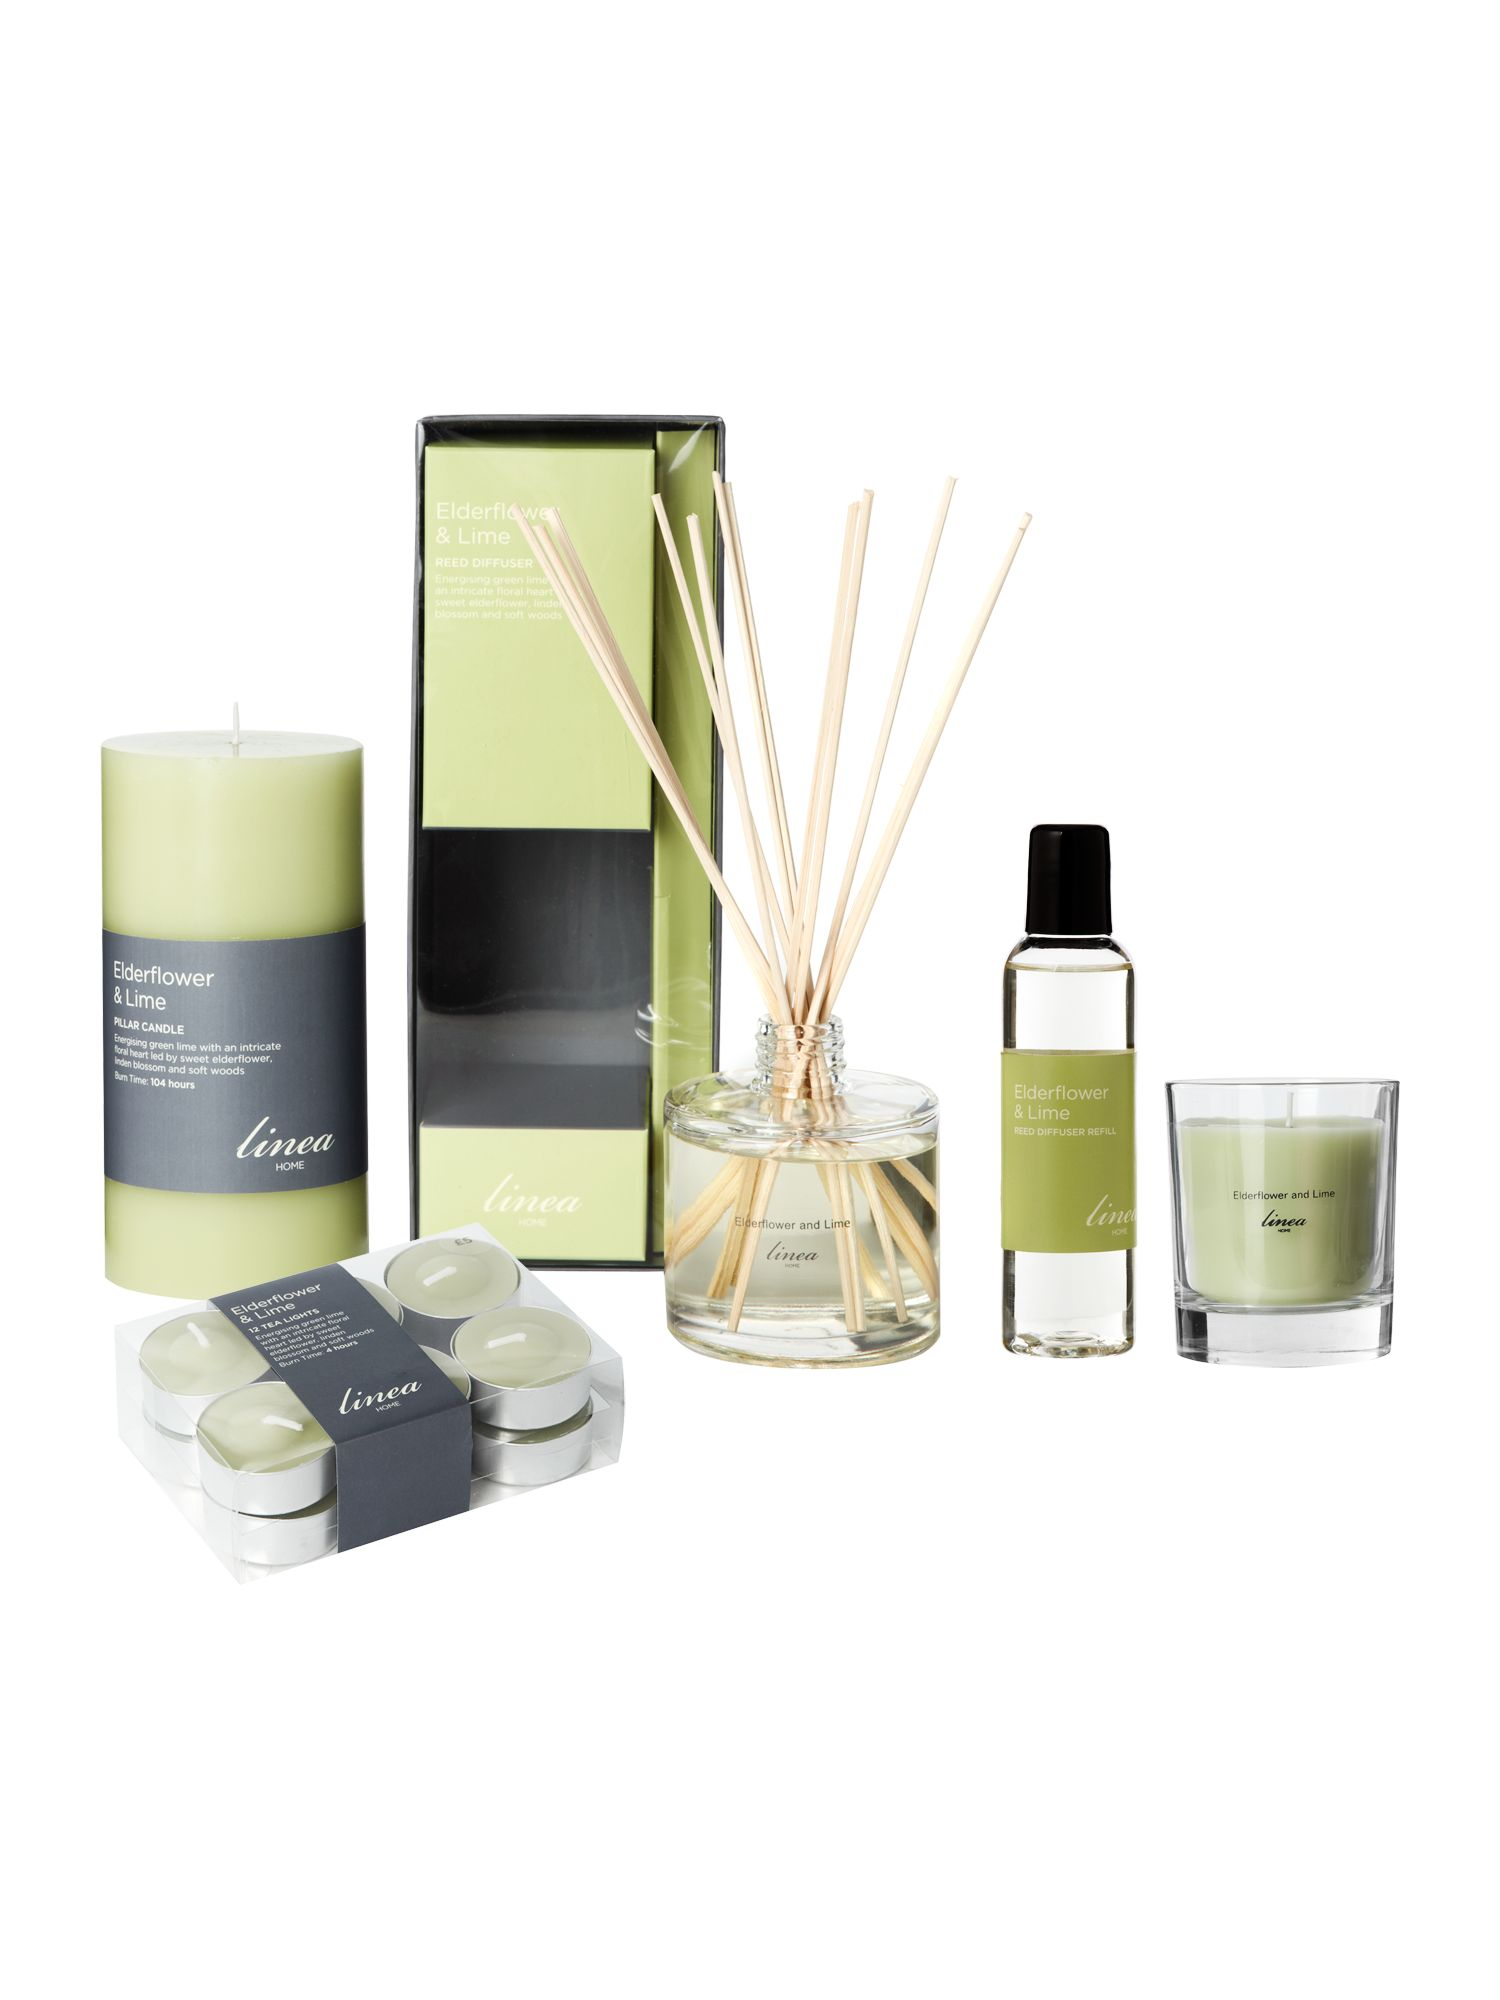 Elderflower and lime room fragrance